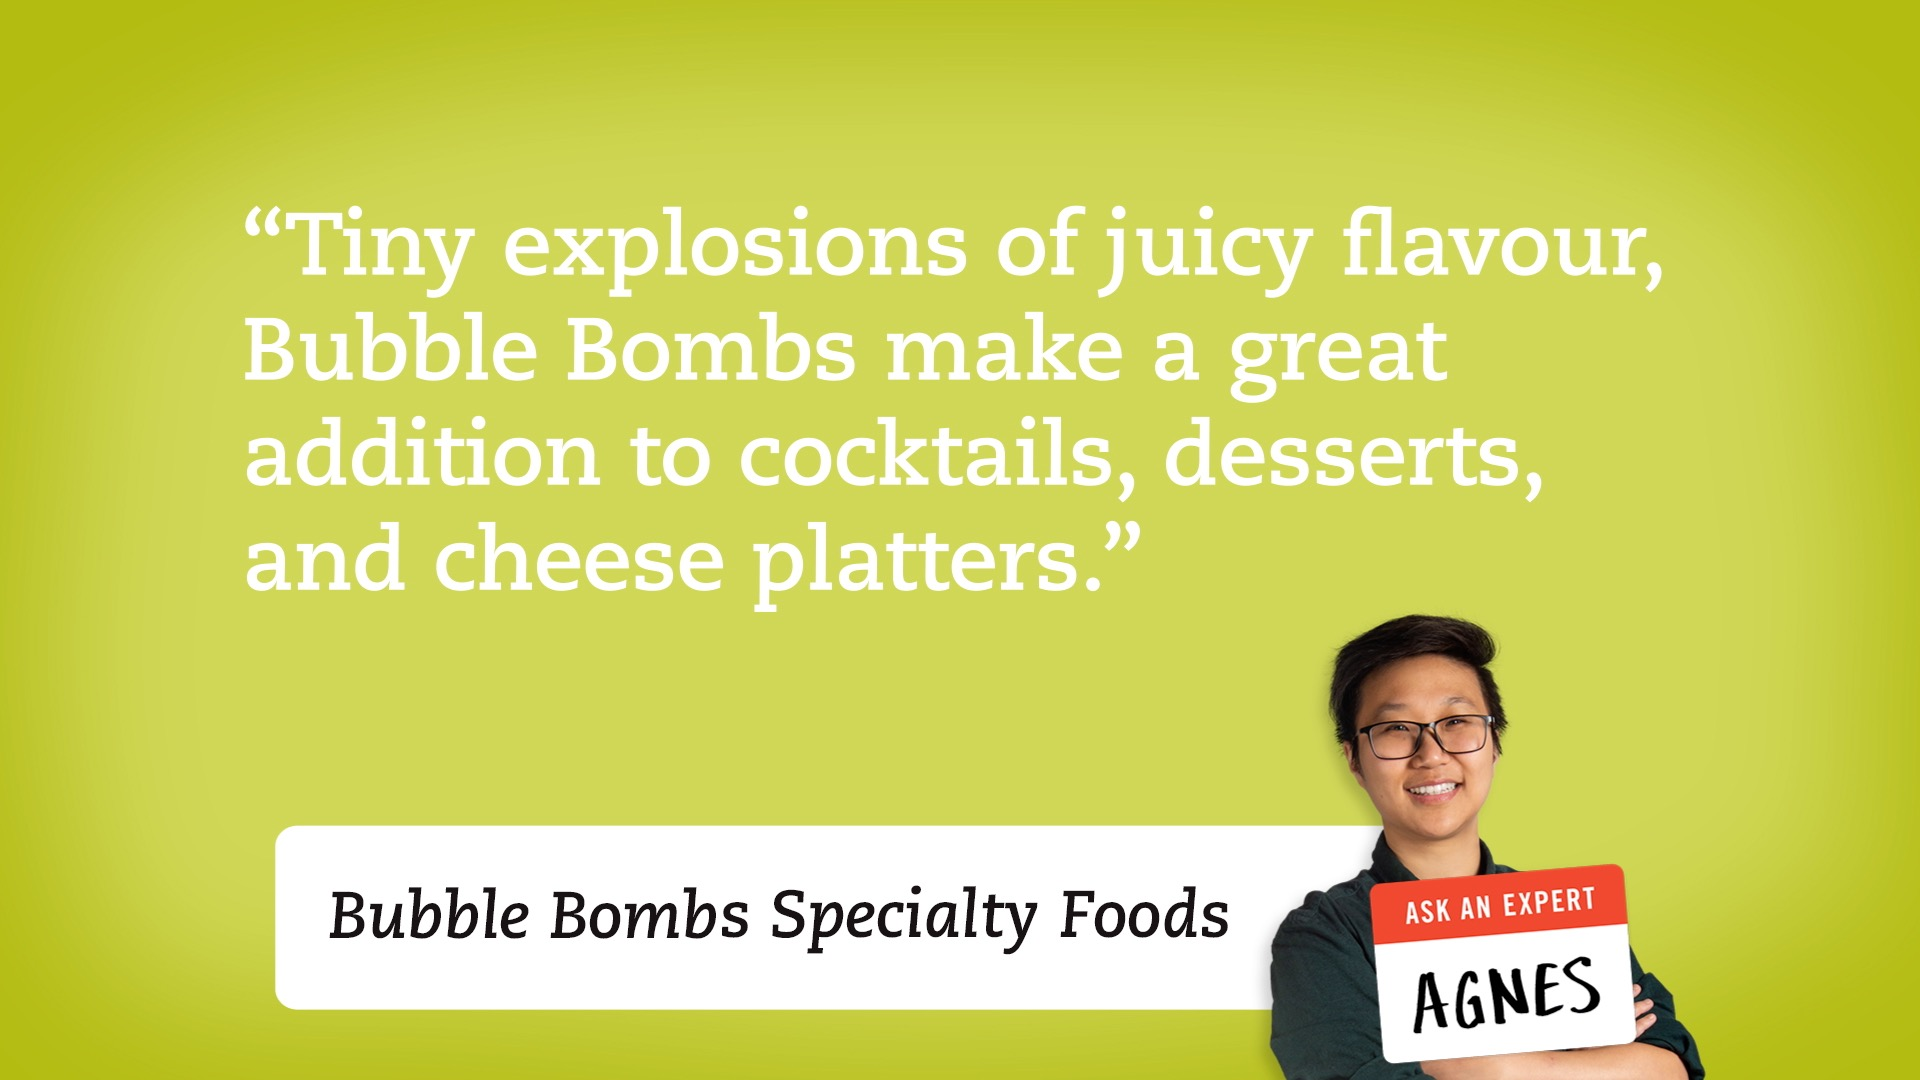 Fruity explosions of juicy flavour, Bubble Bombs make a great addition to cocktails, desserts and cheese platters.